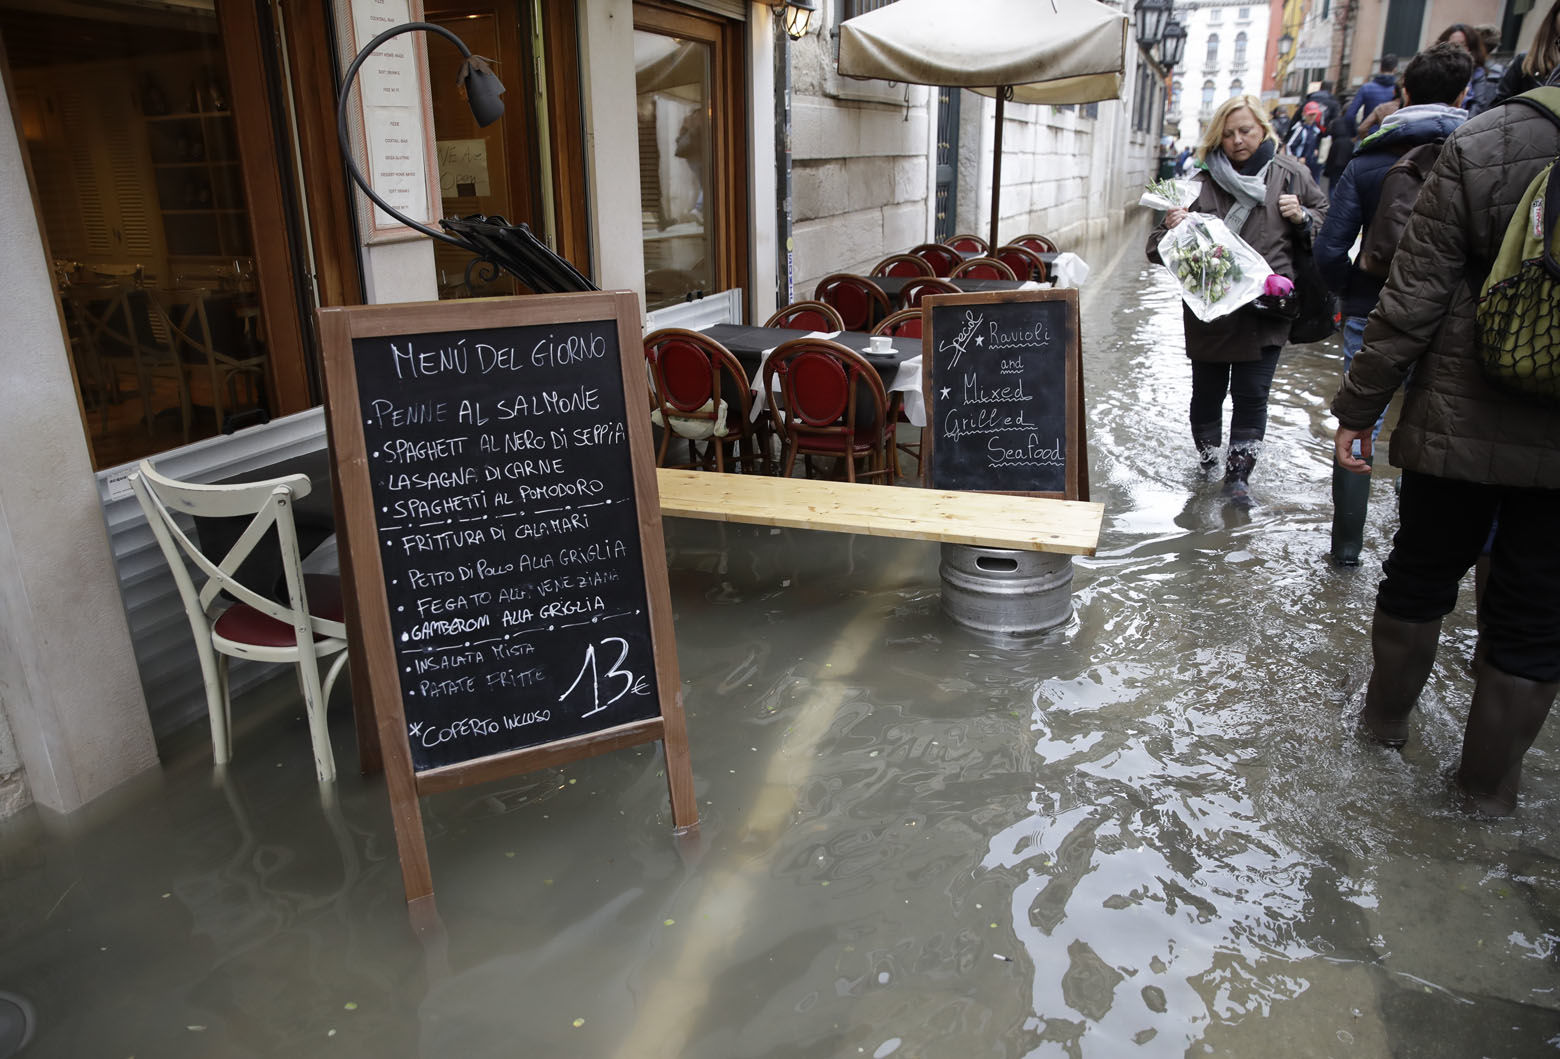 People walk next to a blackboard featuring a restaurant menu in flooded St. Mark's Square in Venice, Italy, Thursday, Nov. 1, 2018 as rainstorms and strong winds have been battering the country. Two people were killed when a falling tree crushed their car in the mountainous countryside in northwestern Italy, as rainstorms and strong winds continued to pummel much of the country. (AP Photo/Luca Bruno)